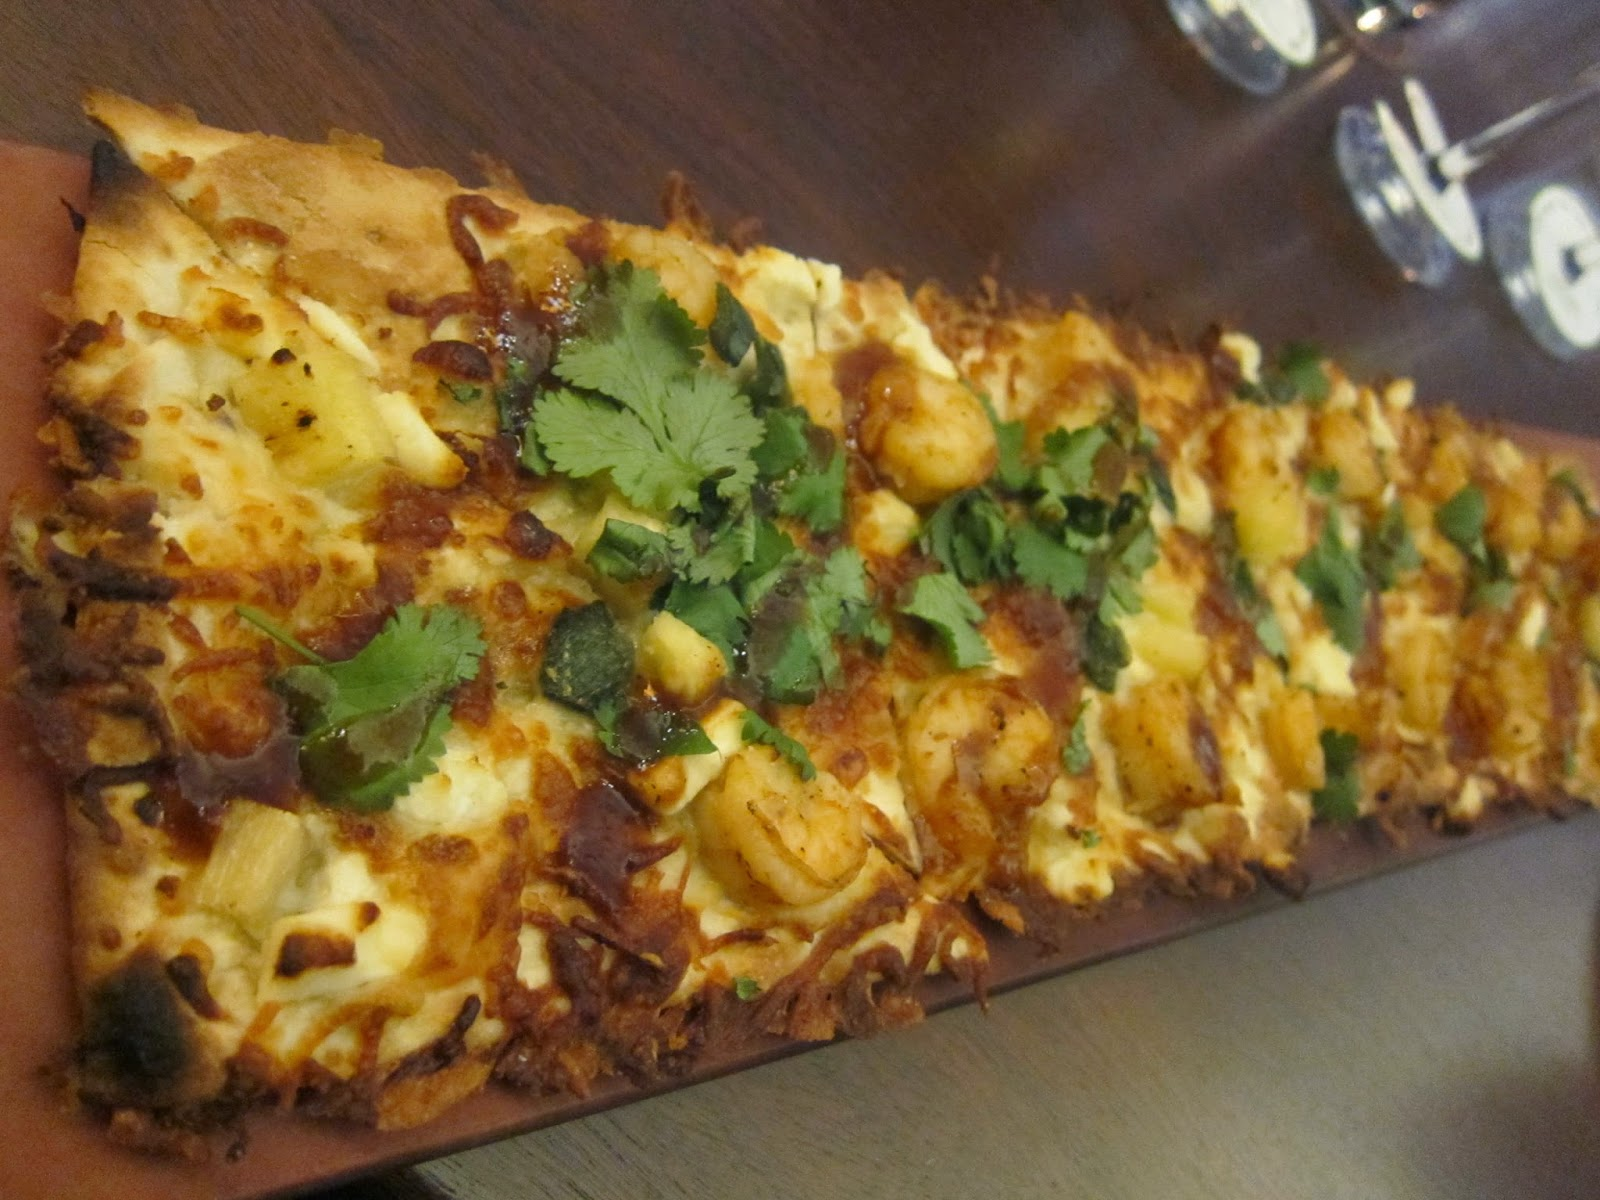 Spicy Chipotle Shrimp Flatbread at Seasons 52 | The Economical Eater